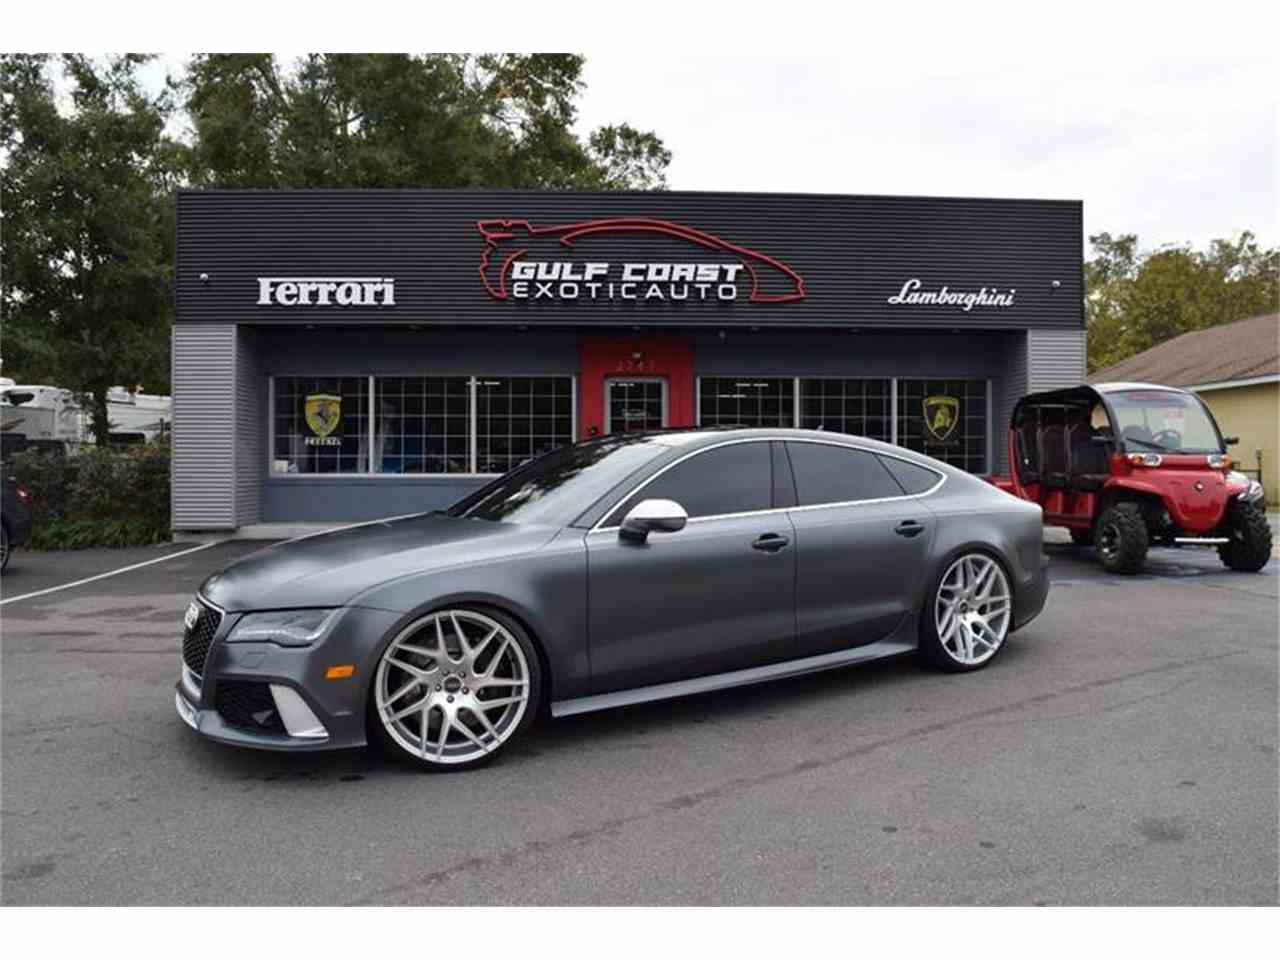 Audi Rs7 2014 For Sale >> 2014 Audi Rs7 For Sale Classiccars Com Cc 1046794